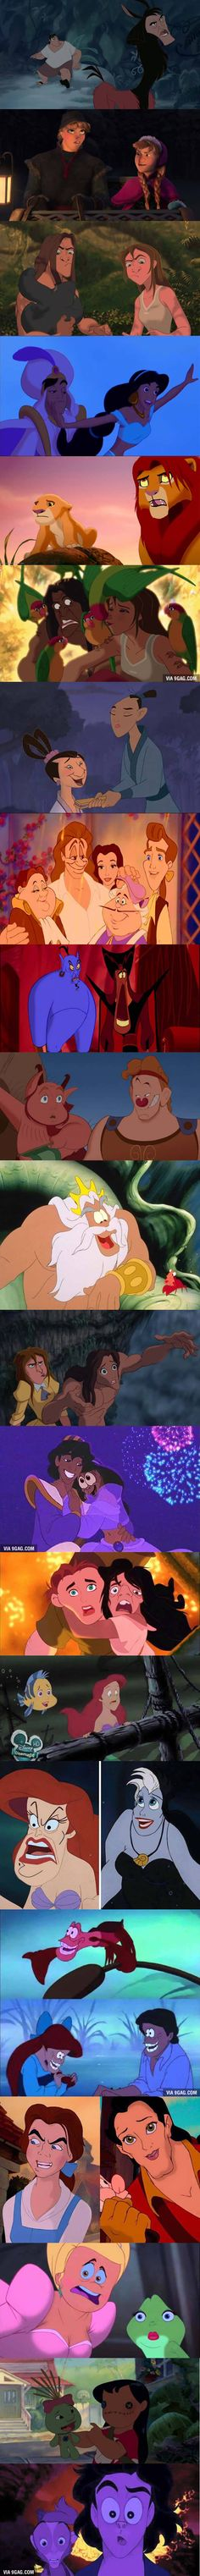 These 21 Disney's Face Swaps Are Funny.   My favorite is the Lilo and Scrump one.